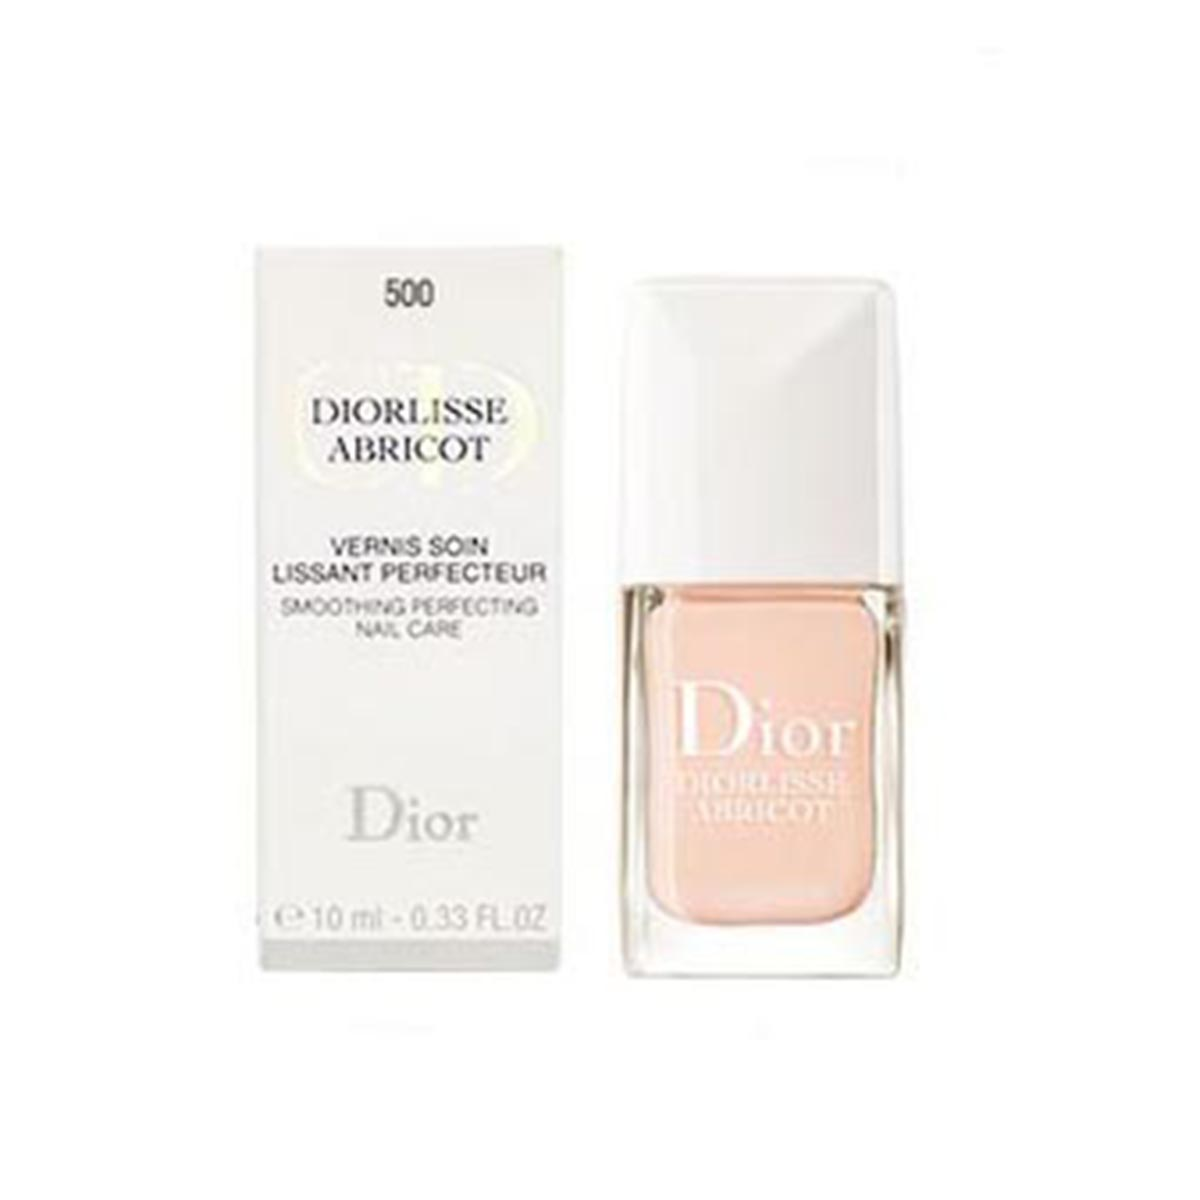 Dior u as coll diorlisse 500